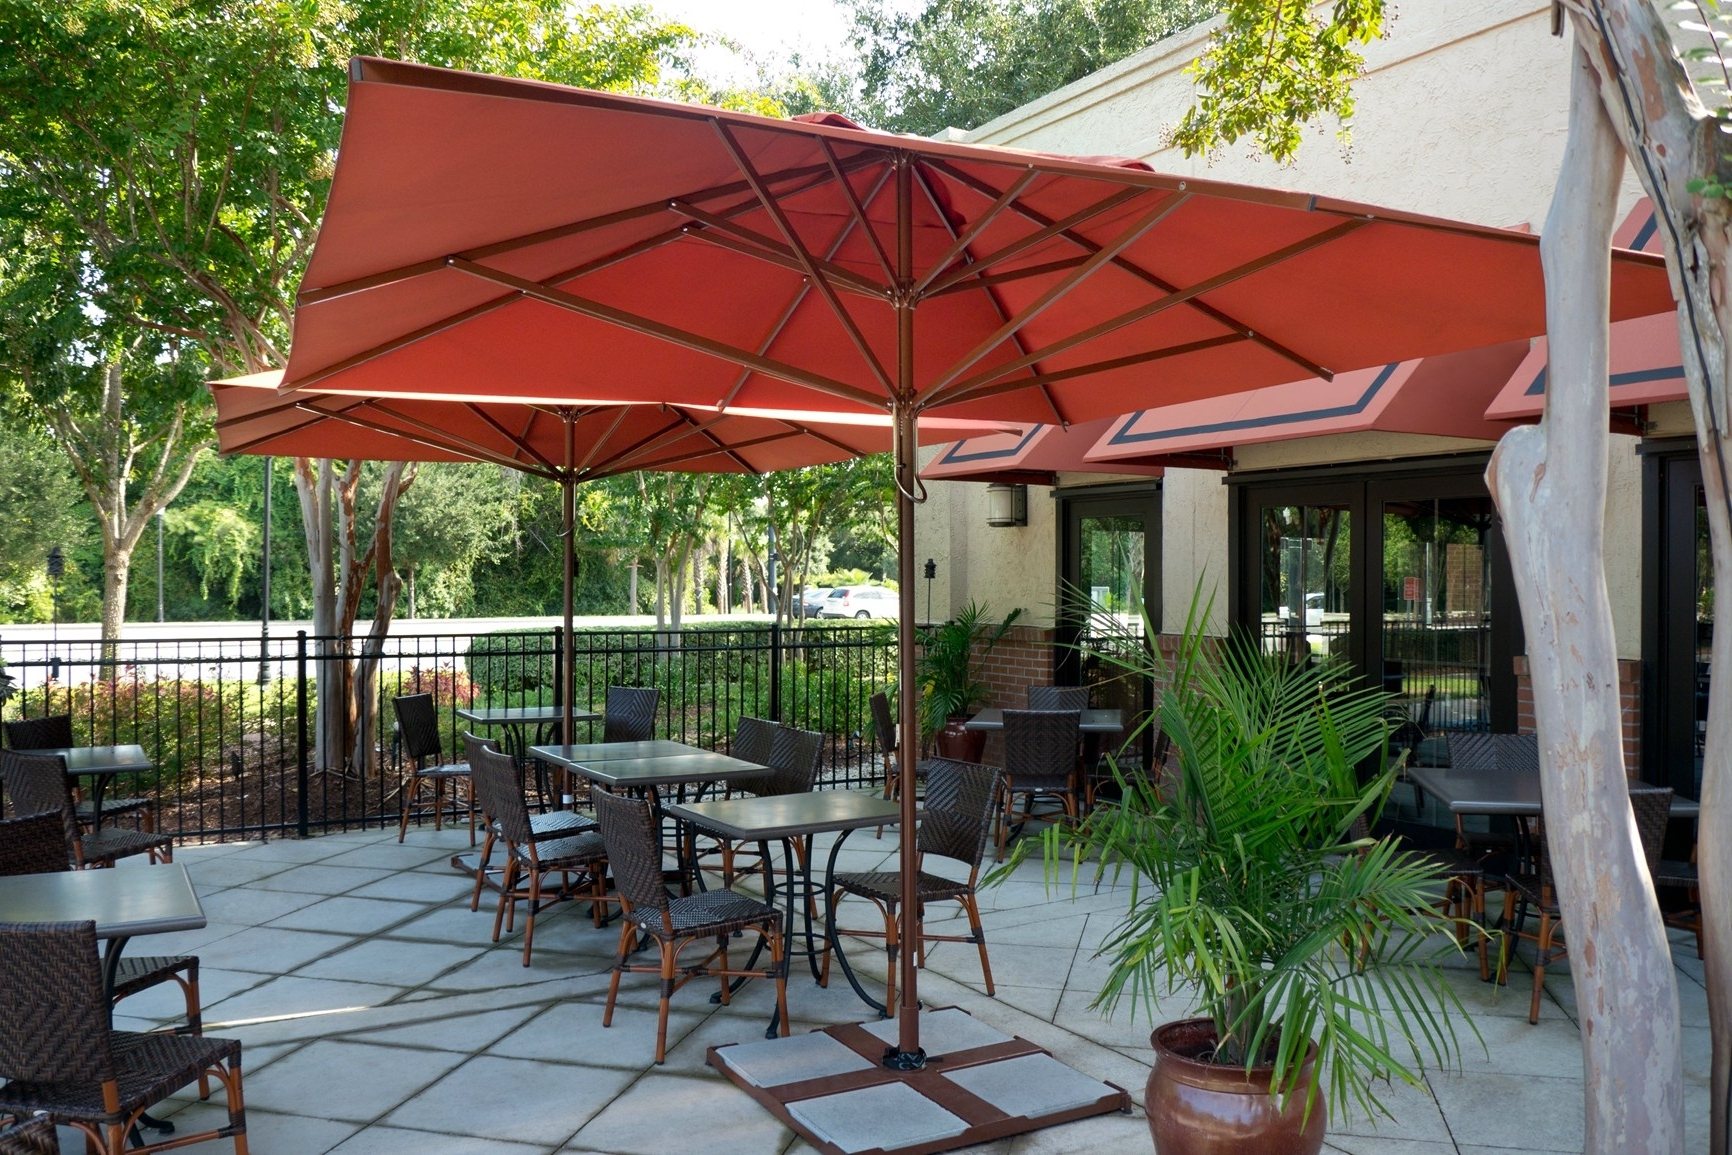 Vintage Patio Umbrella Best Of Pagoda Patio Umbrella Clearance Sale With Regard To Most Up To Date Vintage Patio Umbrellas For Sale (View 12 of 20)